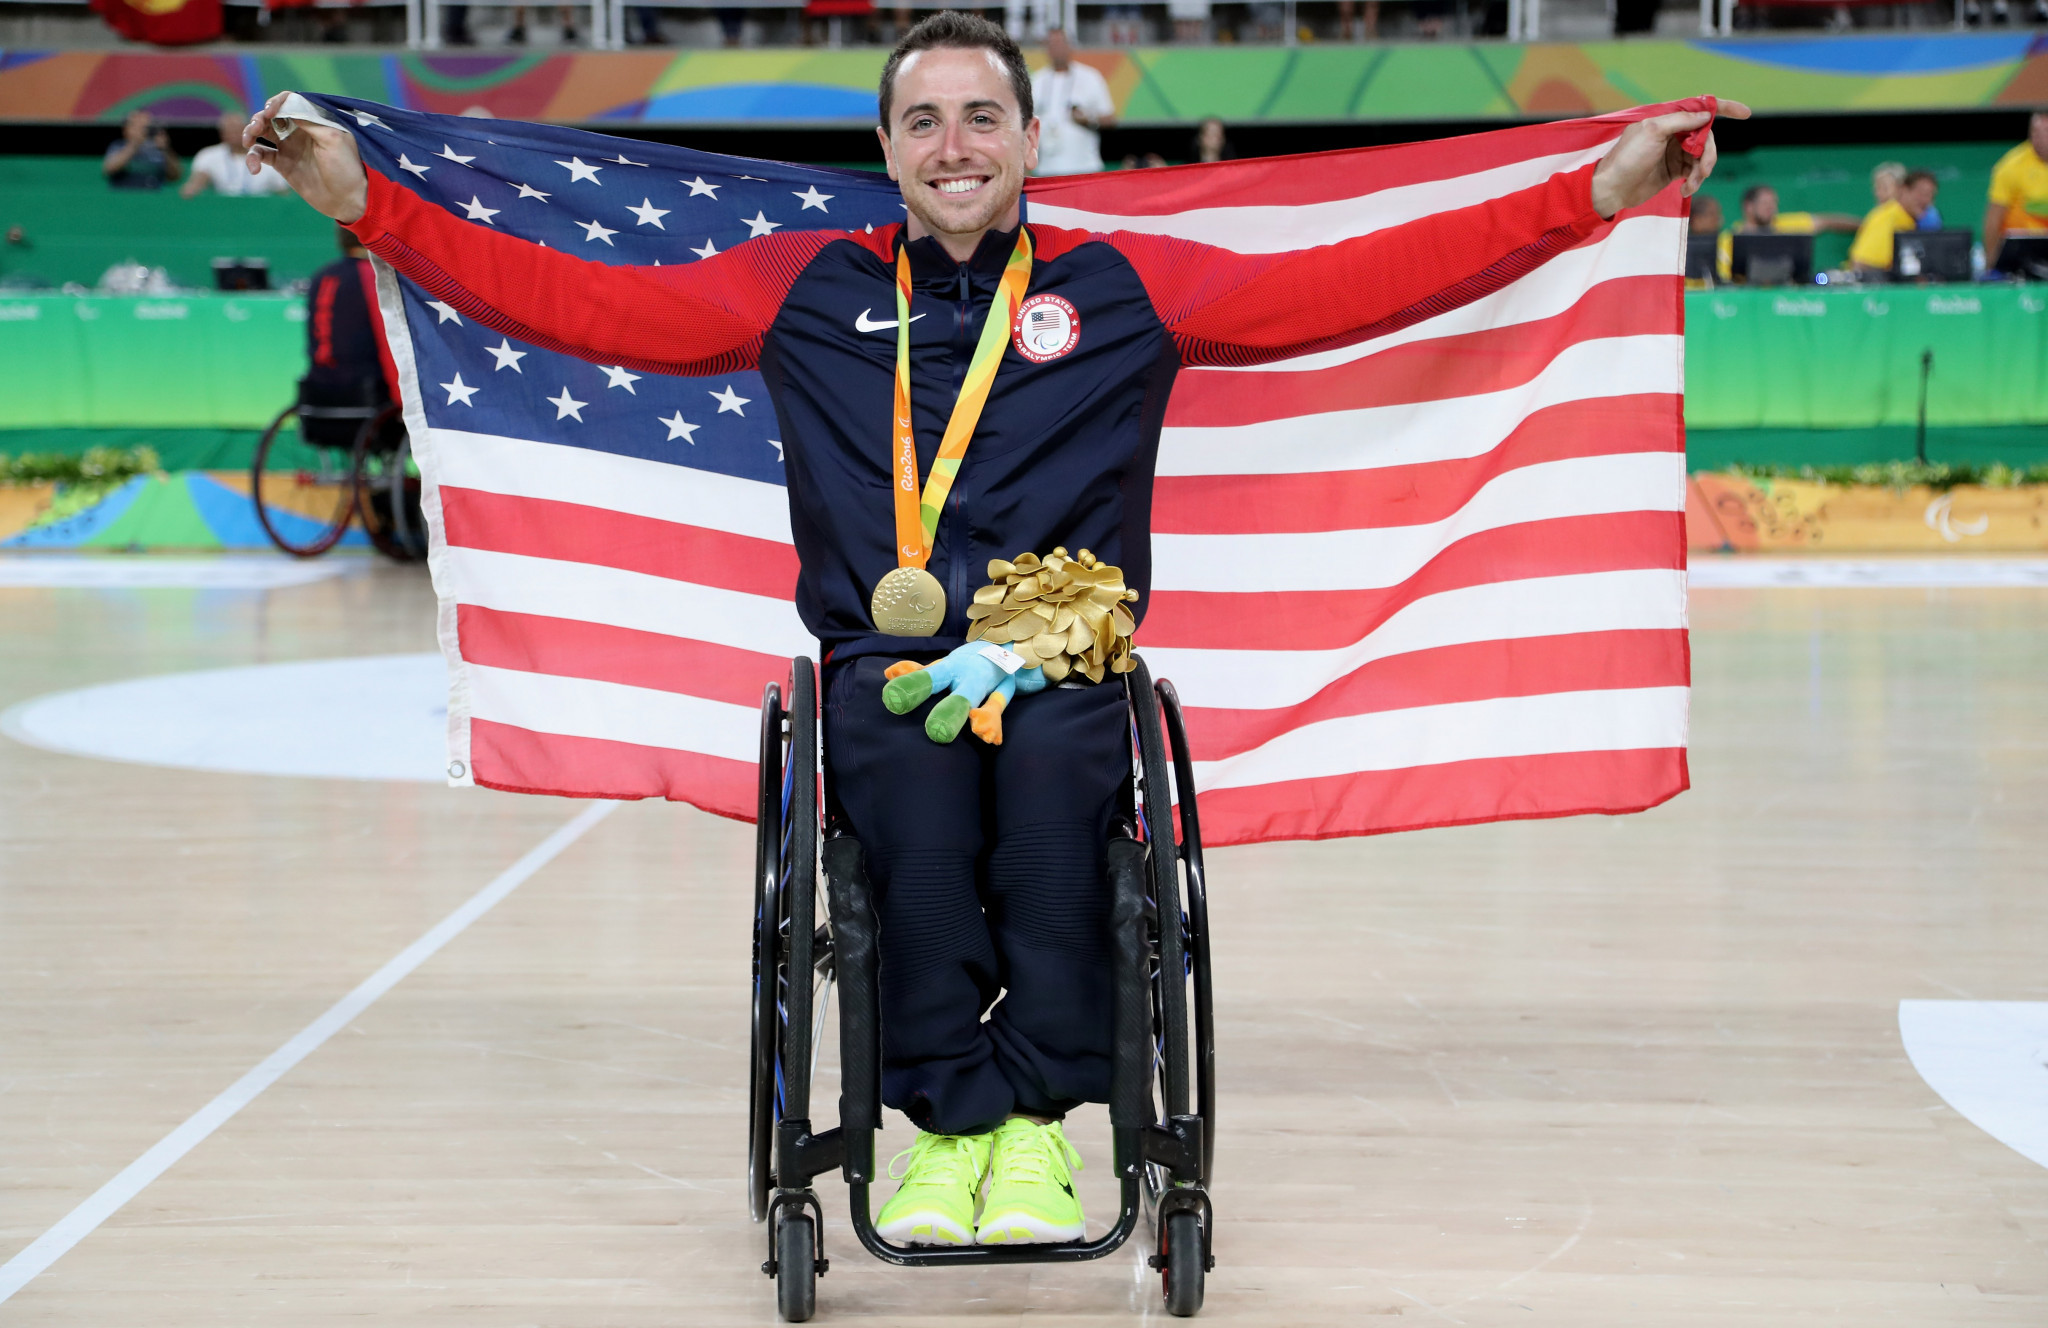 Steve Serio, who won gold with the US wheelchair basketball team at the 2015 Parapan American Games and 2016 Rio Paralympics, is in the initial selection for the 2019 team ©Getty Images